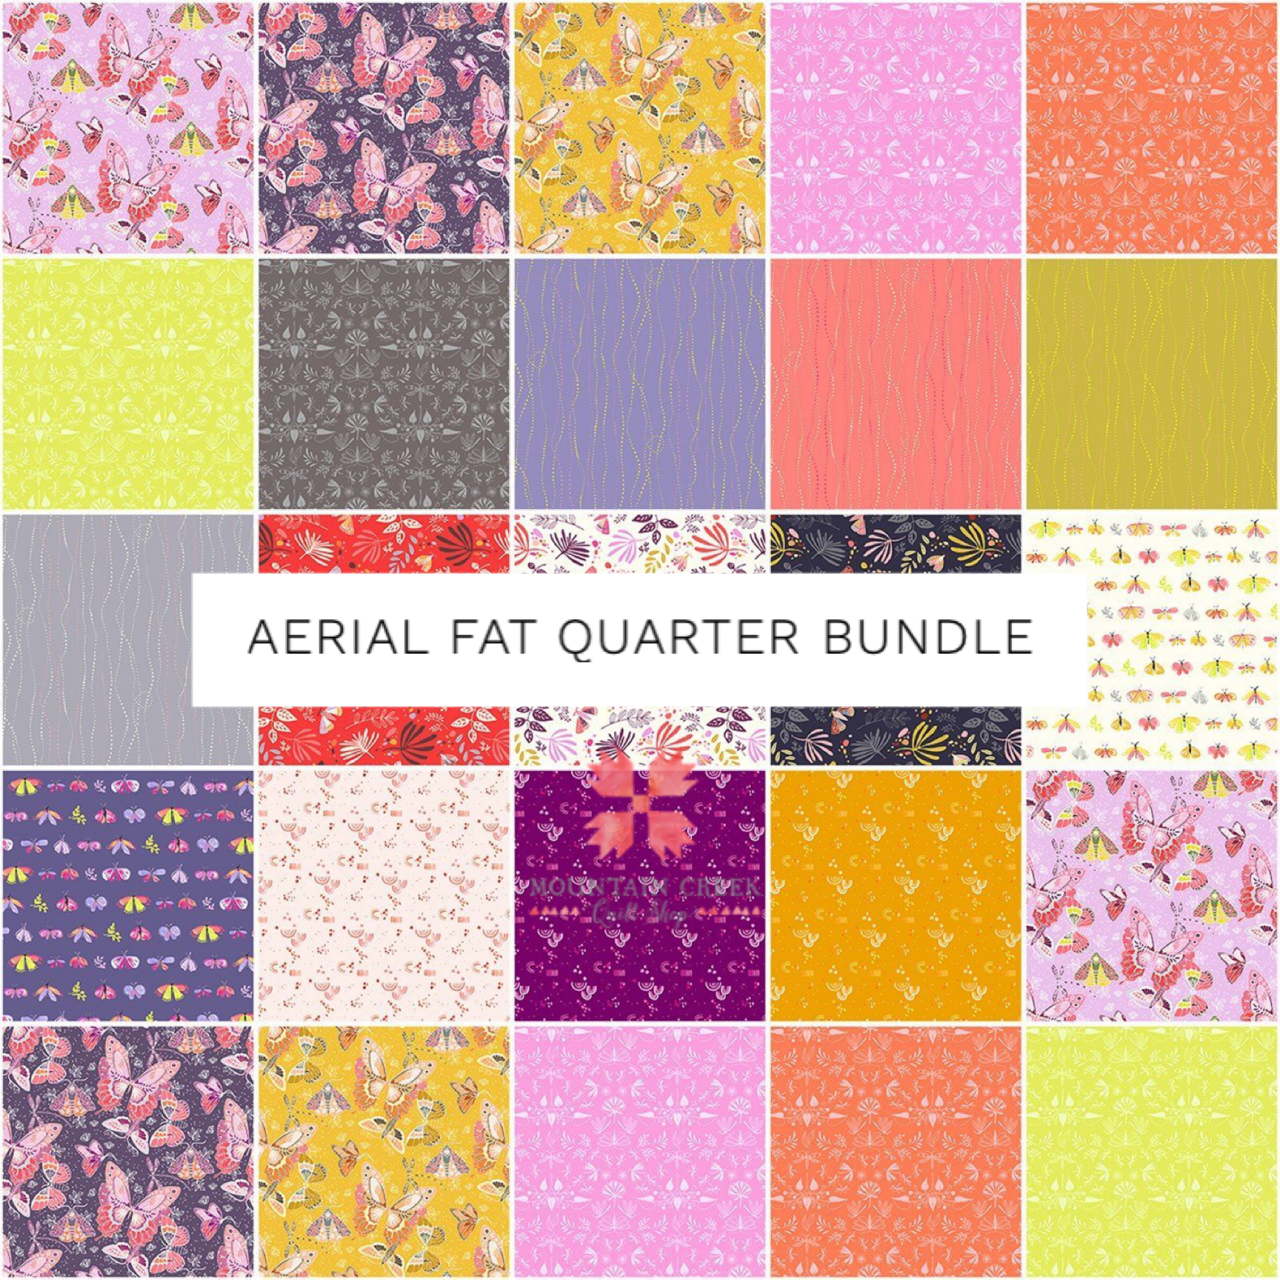 Aerial Fat Quarter Bundle